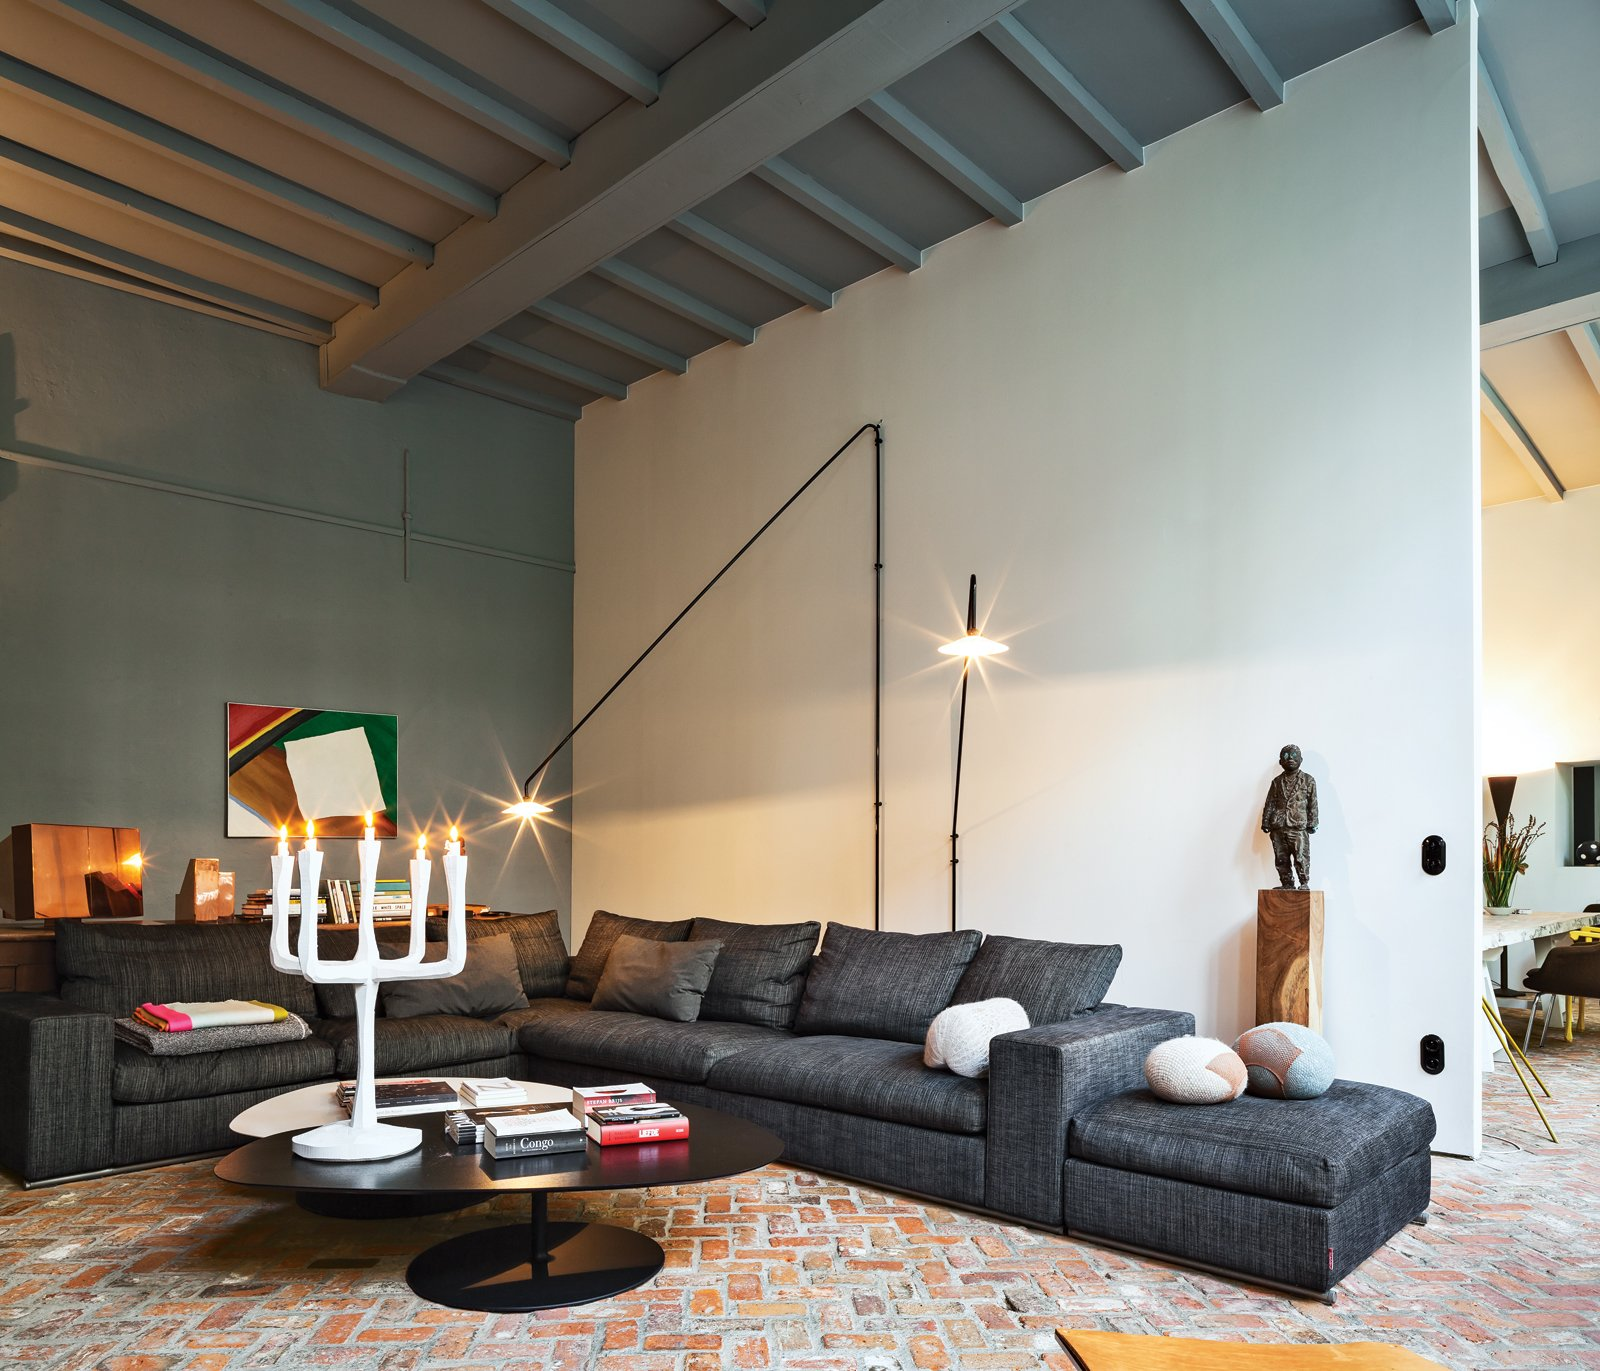 The room also contains a sofa by Flexform, cushions from textile firm Chevalier Masson, a Jens Fager candelabra, and a painting by Roger Raveel. Tagged: Living Room, Brick Floor, Sofa, Sectional, Floor Lighting, and Table Lighting.  Living Rooms by Lara Deam from An Eclectic Living Room in Antwerp